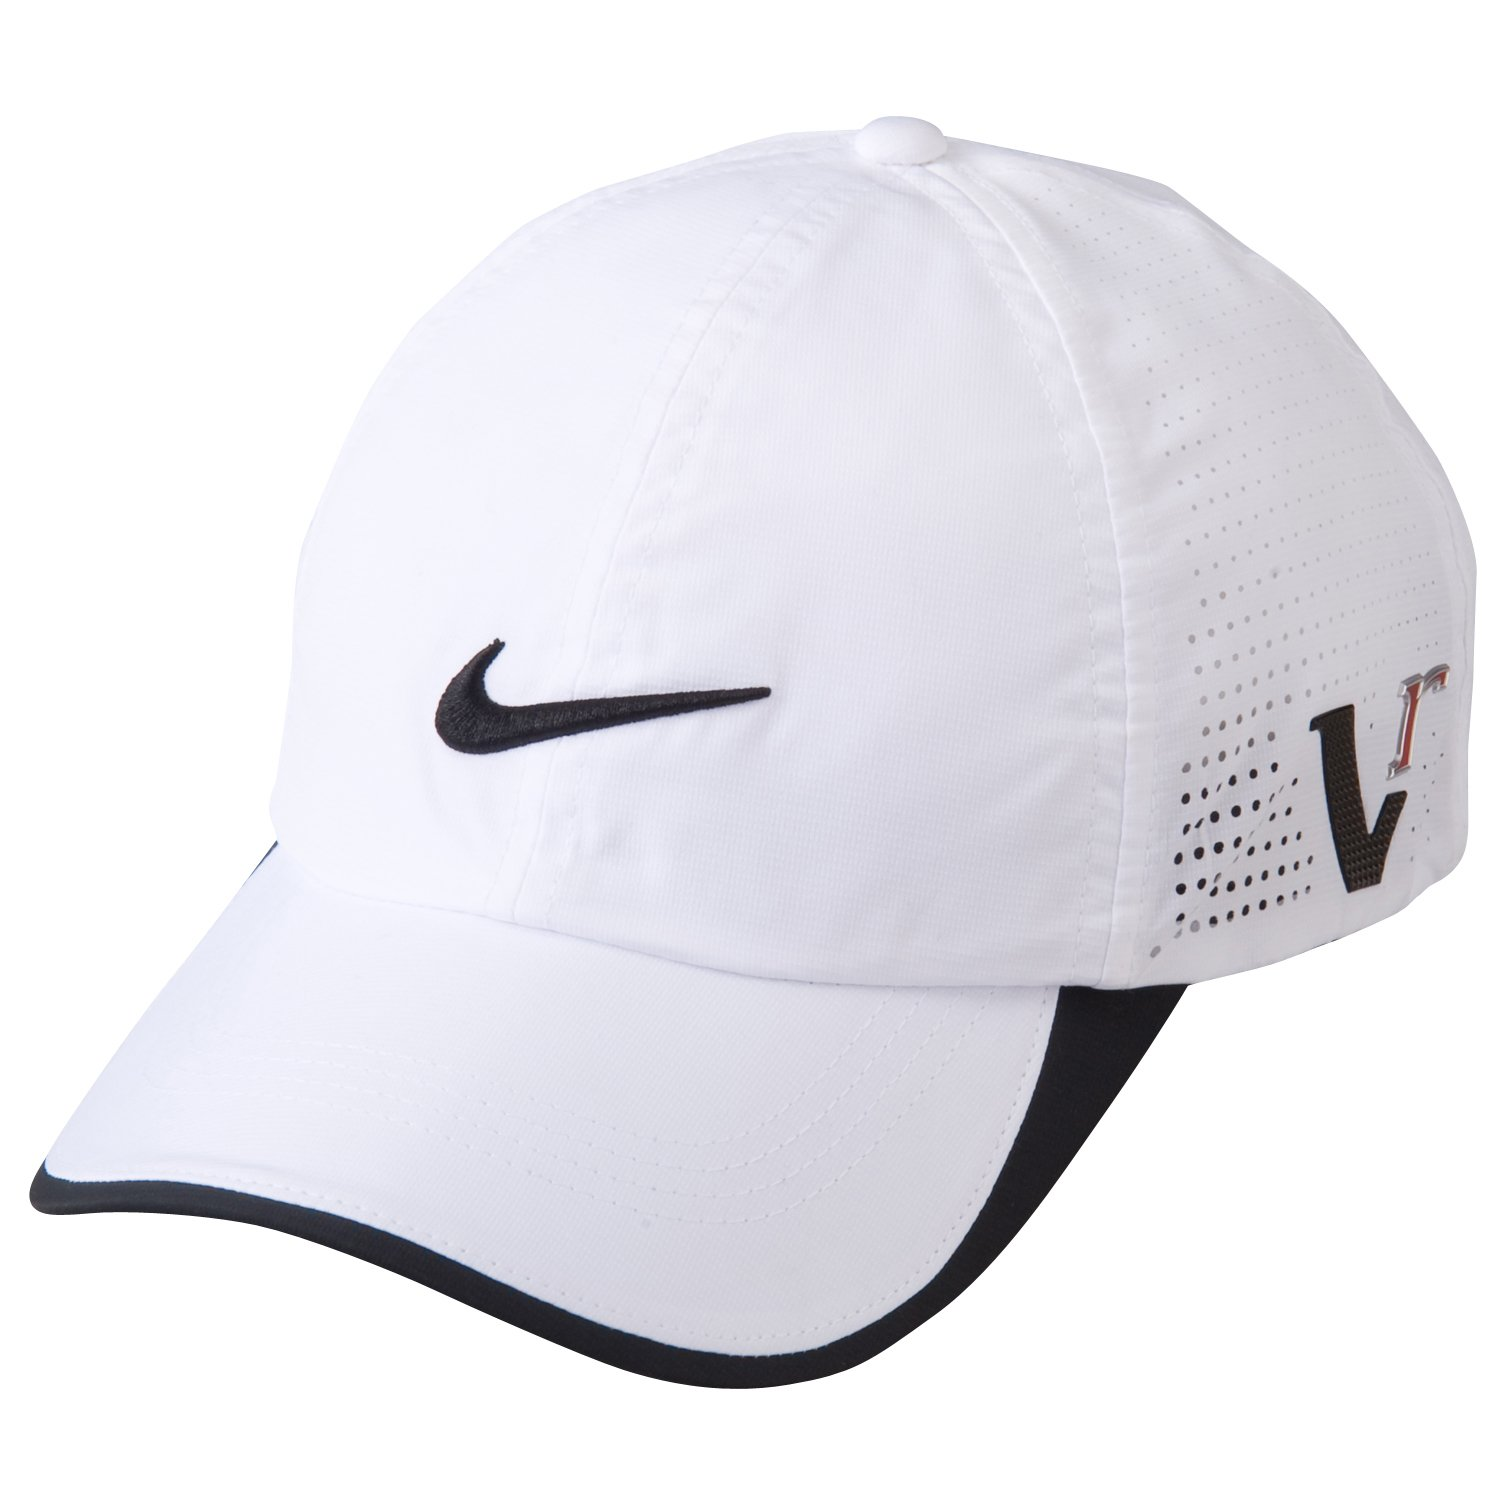 Nike Dri-Fit Tour Gorra de golf, unisex, blanco: Amazon.es ...